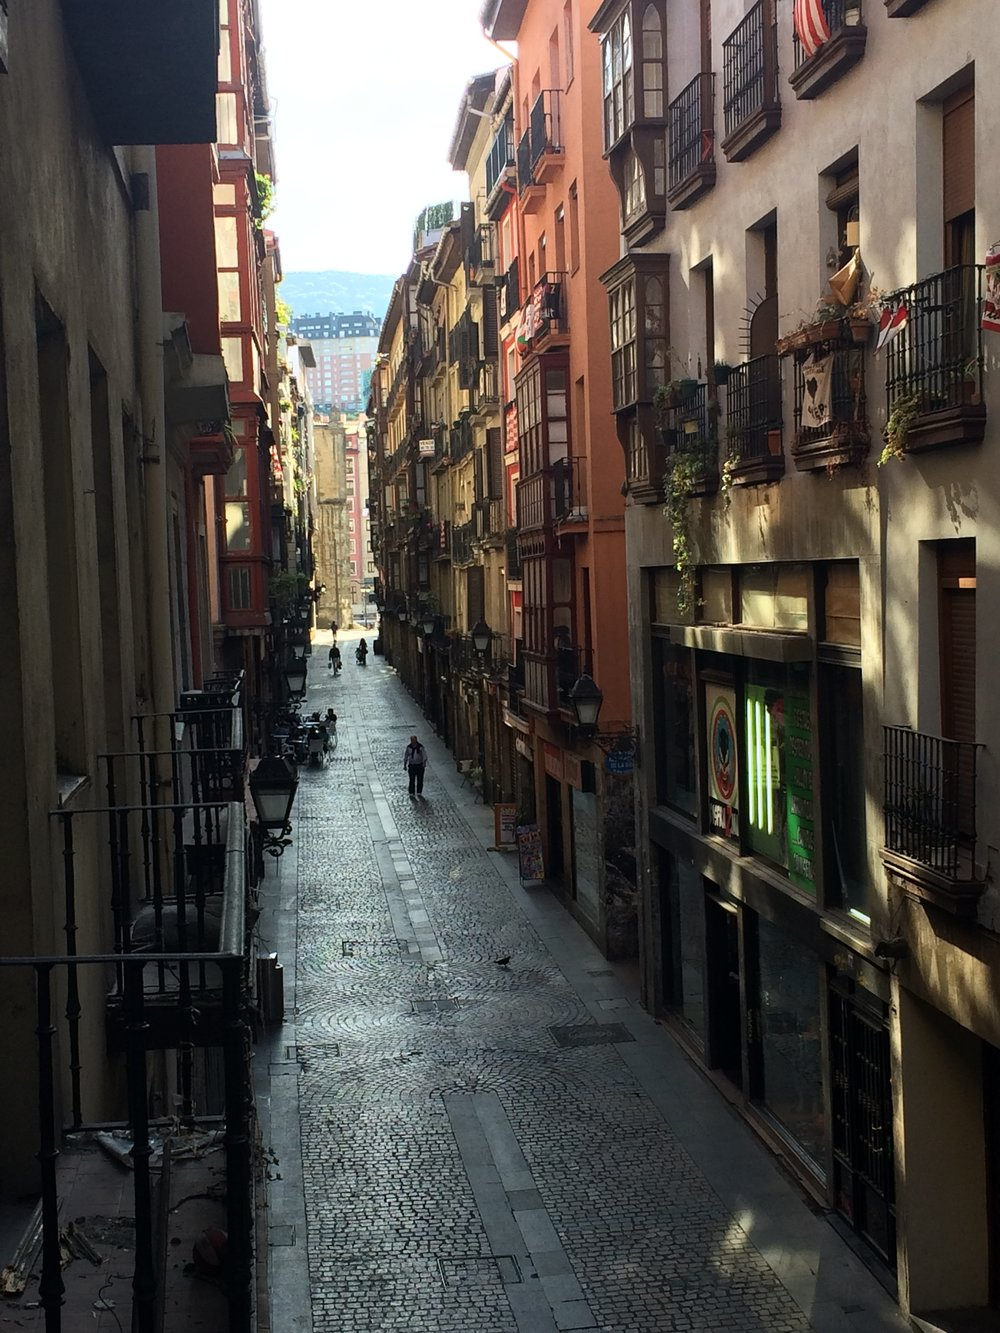 Good morning, Bilbao!